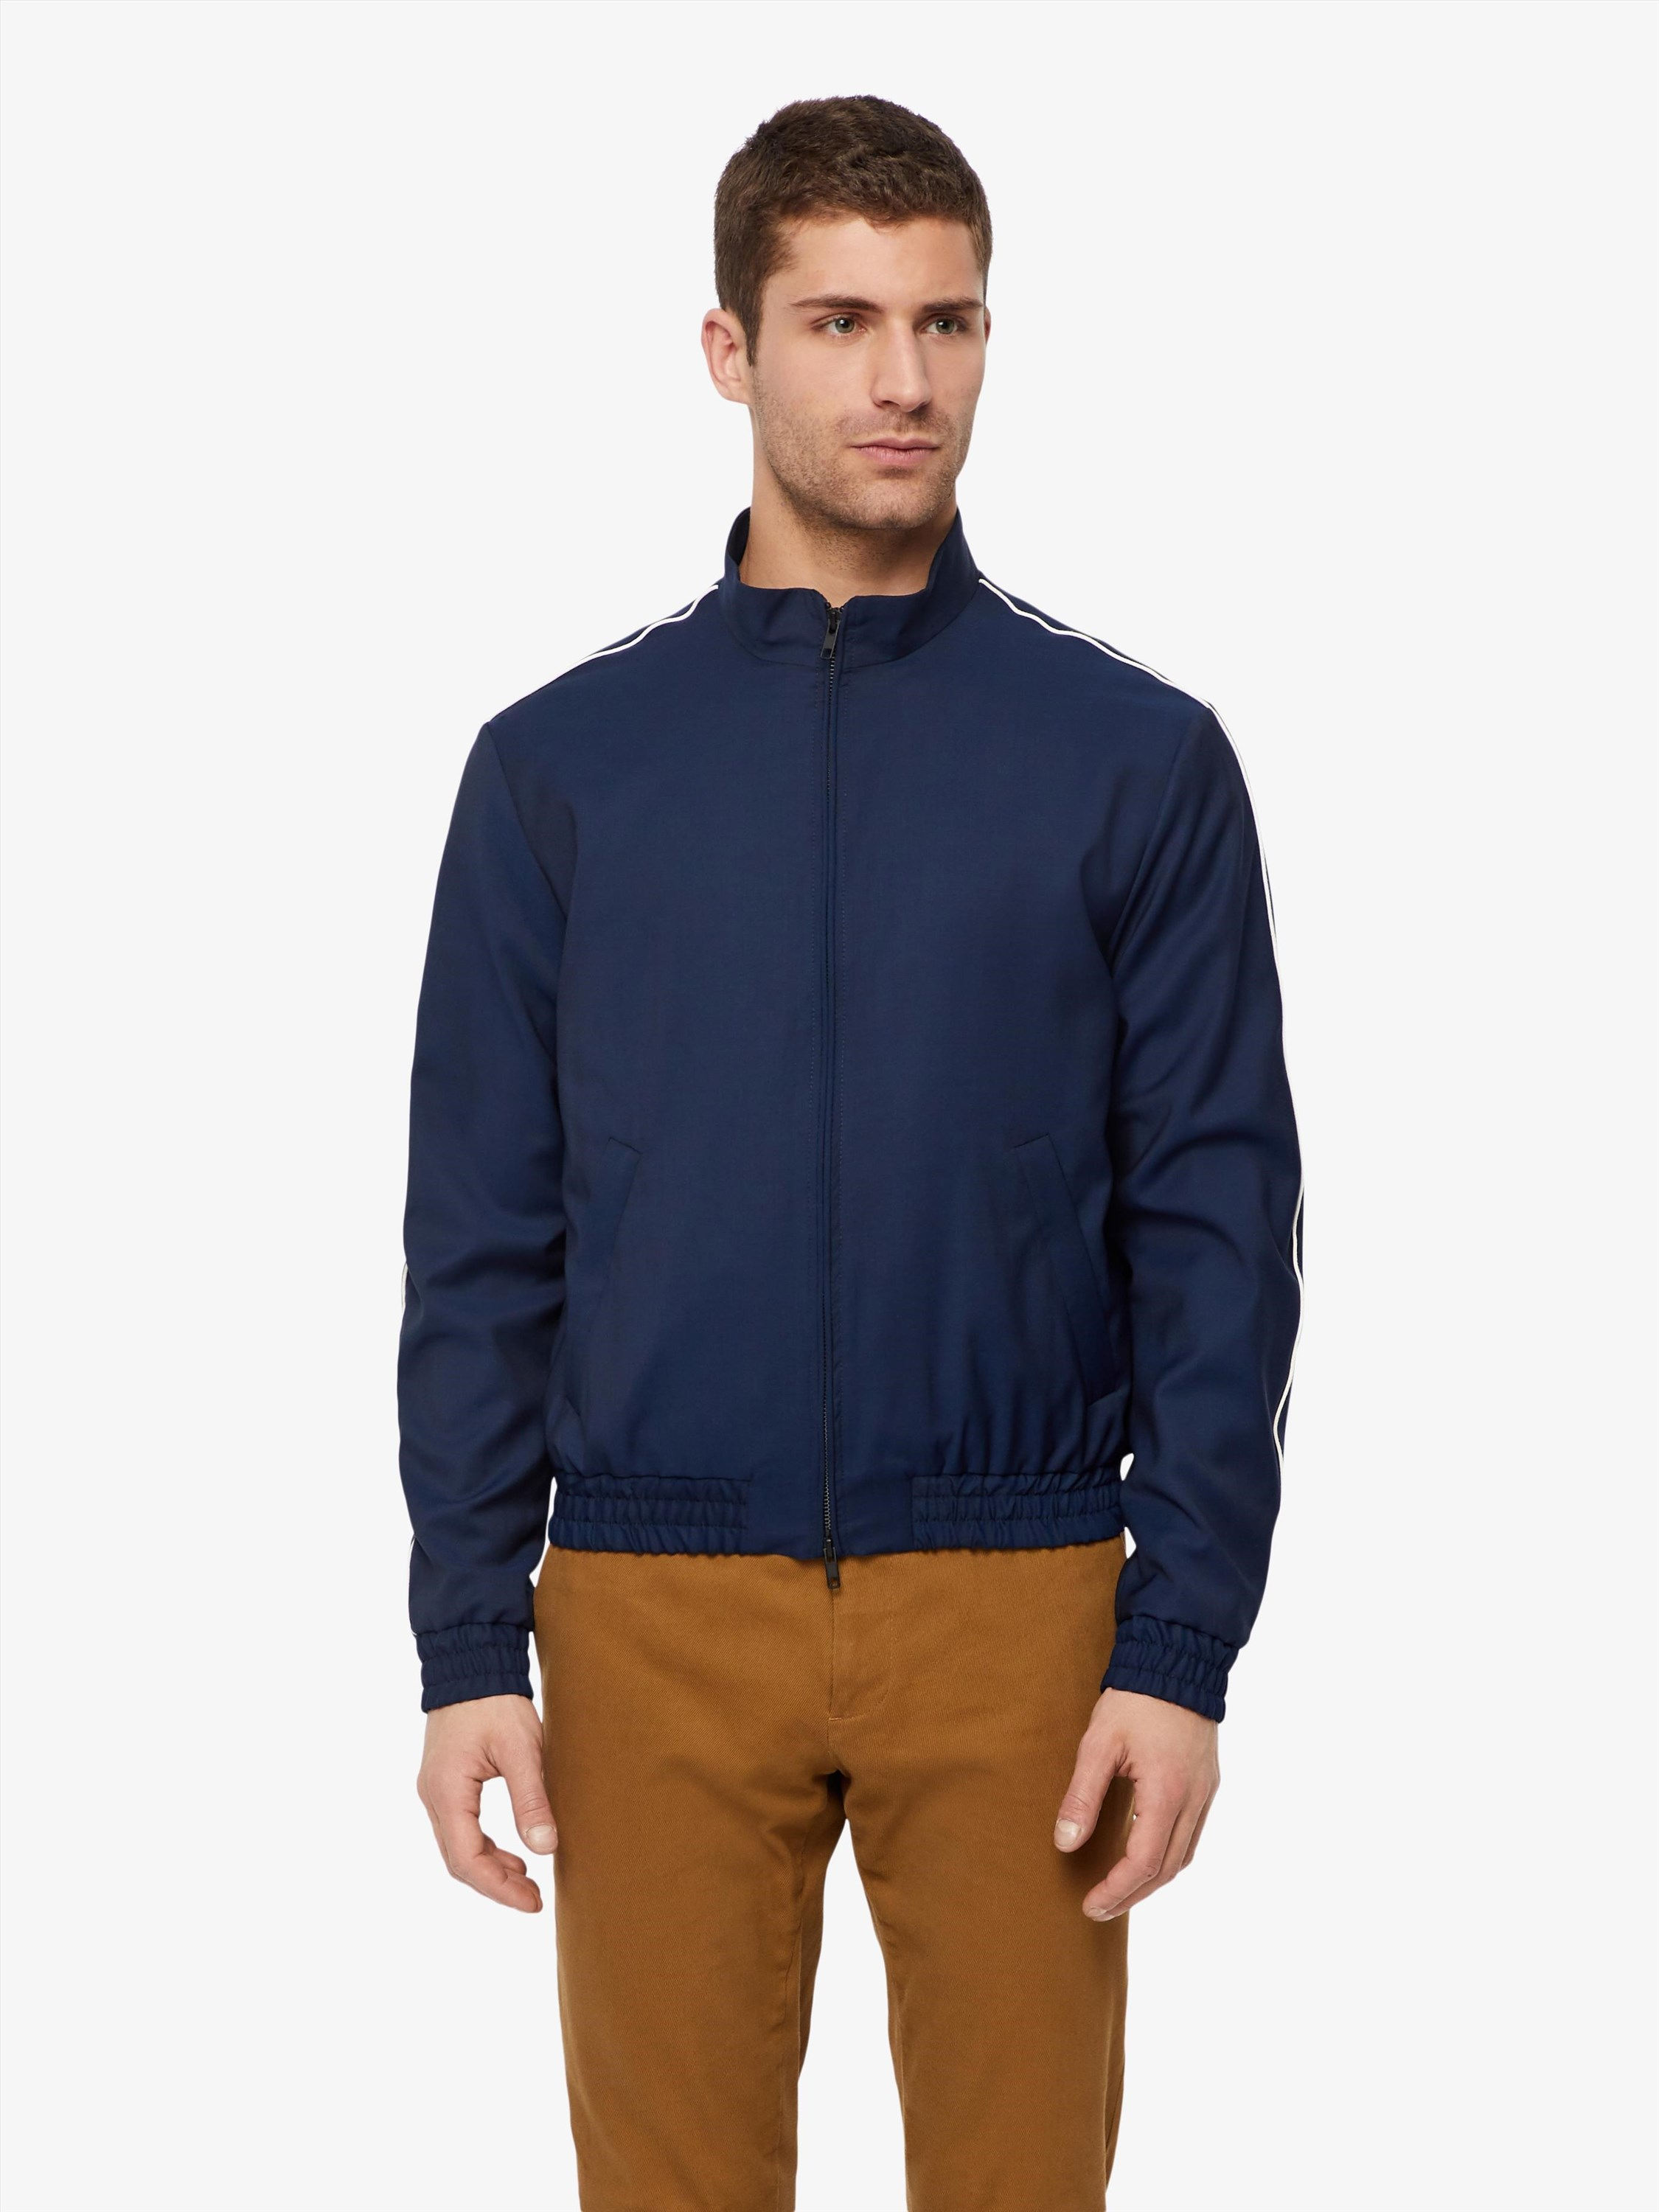 648df2de5b4 A slim sports wool natural stretch jacket with a slight stand collar and  kangaroo-pocket on front. – Italian wool fabric with natural stretch